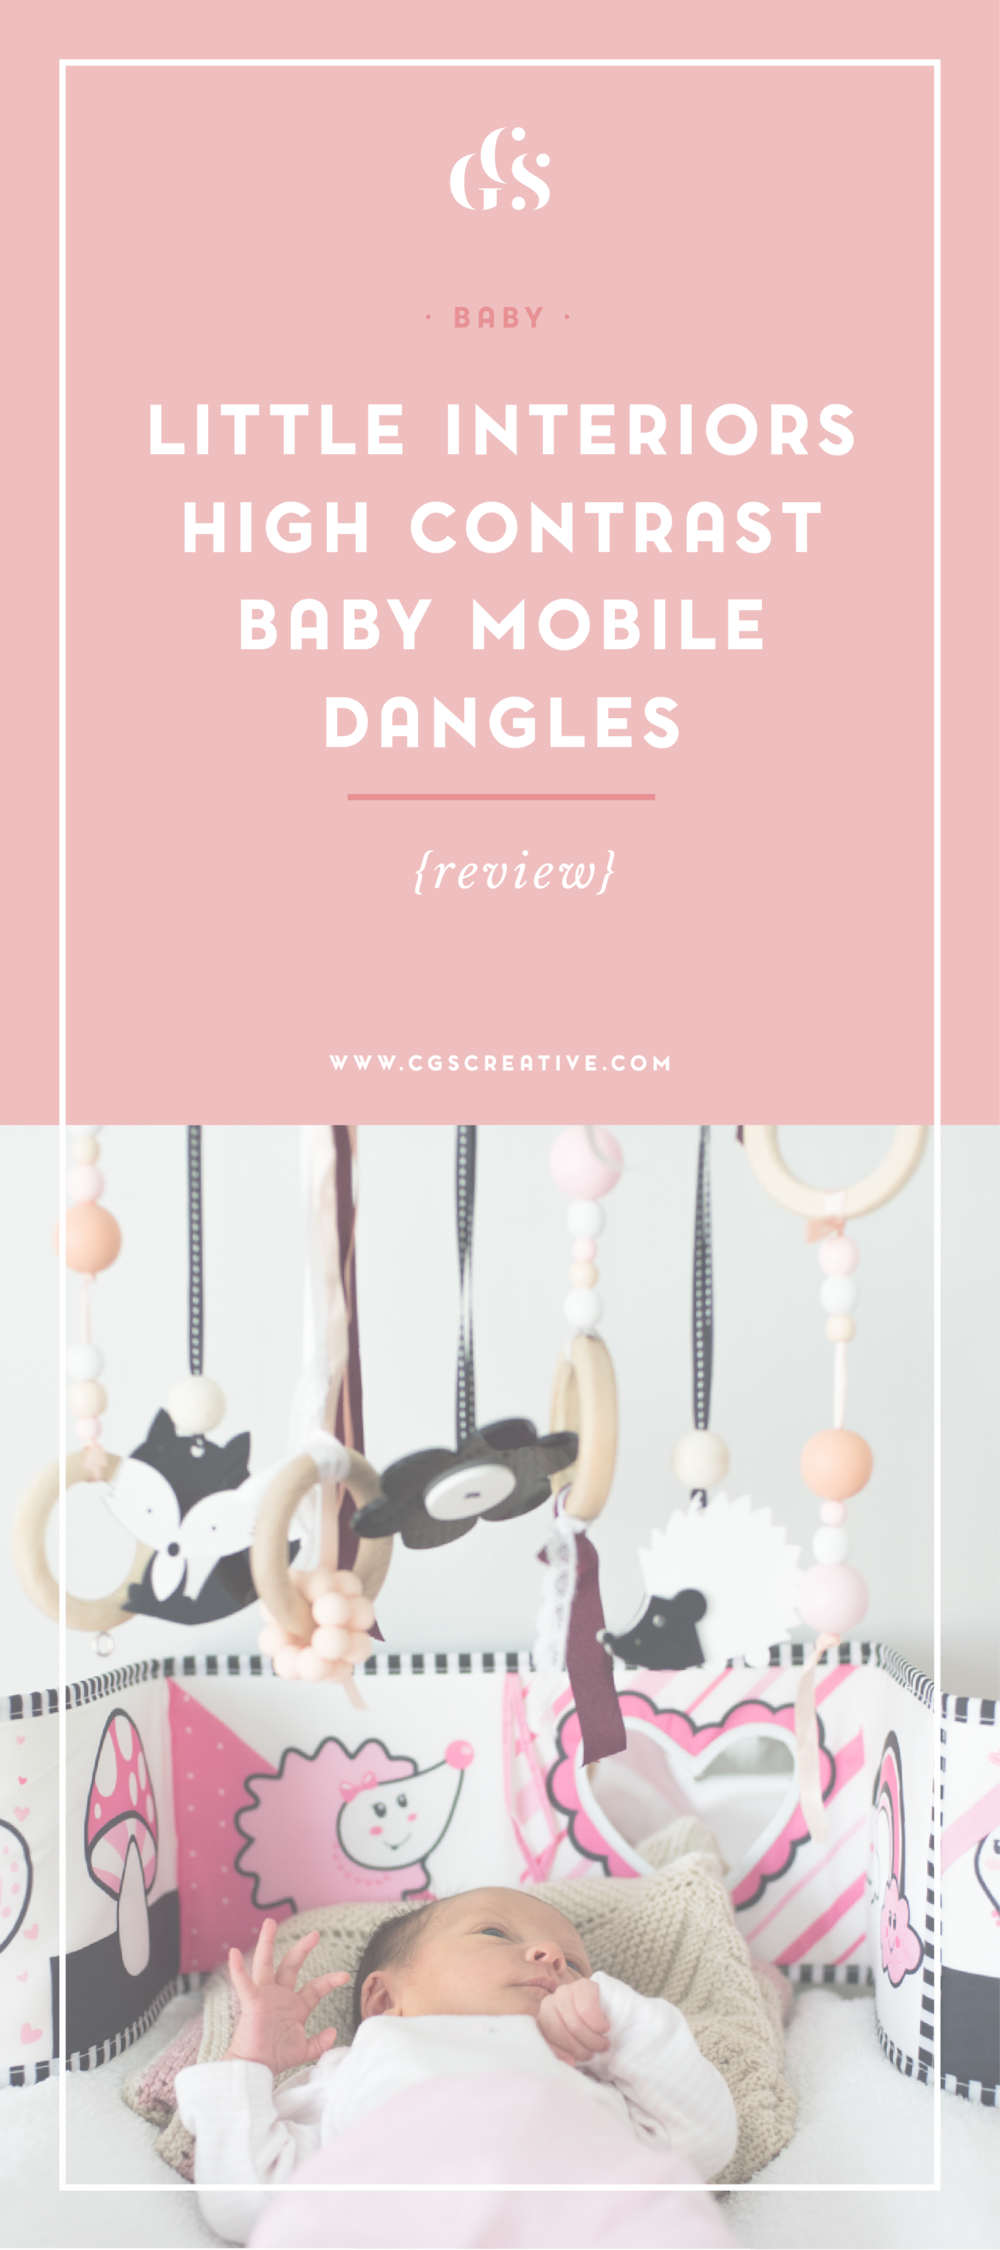 High Contrast Baby Mobile Dangle Toys from Little Interiors Photos by Roxy Hutton CityGirlSearching Blog_Artboard 4.png